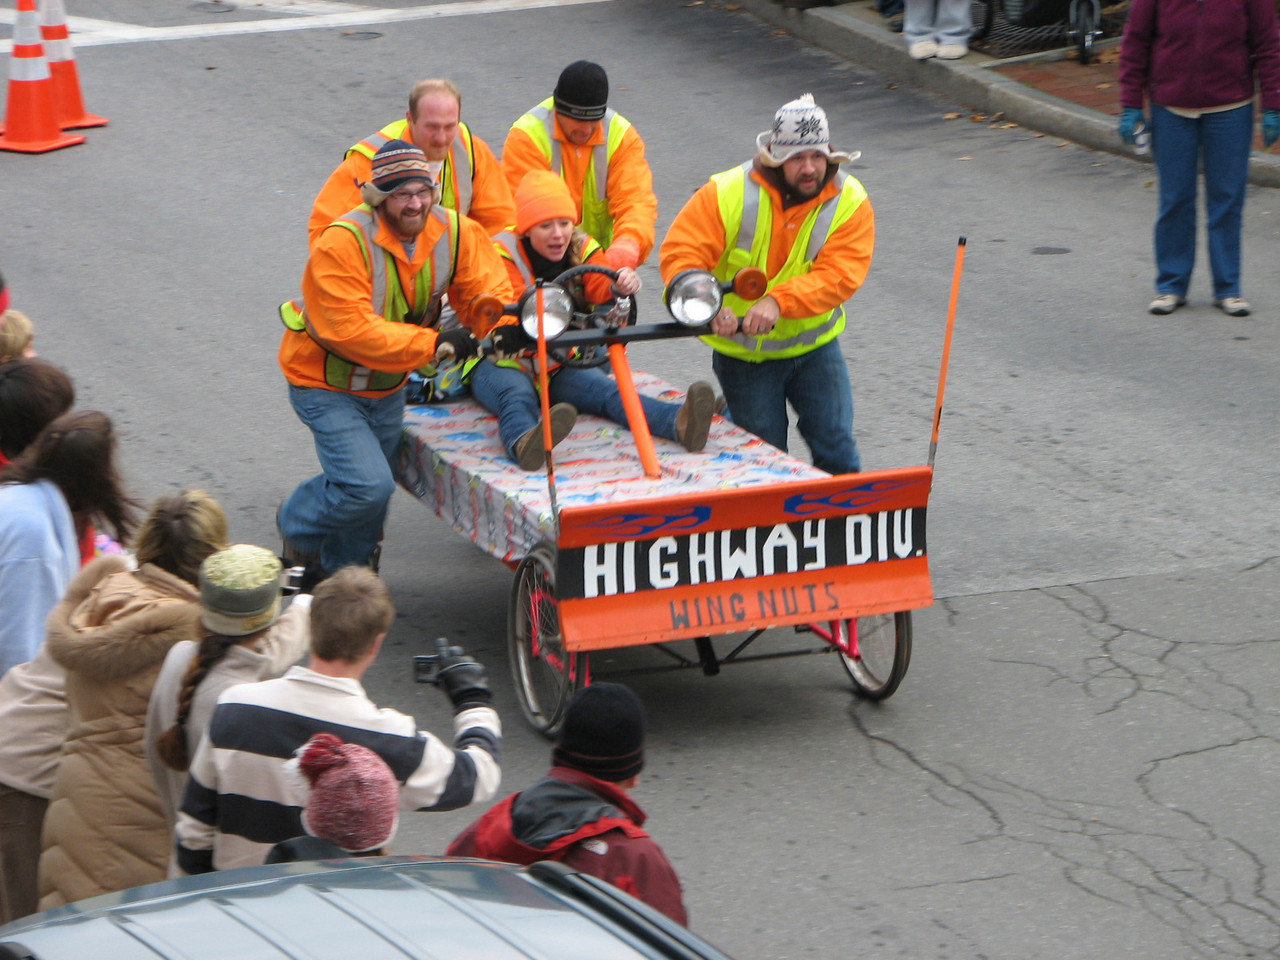 With a small plow mounted on the front, the Bar Harbor Highway Division bed racing team navigates their bed down Cottage Street on Saturday, November 20, 2010  during Bar Harbor's Third Annual Bed Races, which are part of the Bar Harbor Chamber of Commerce's annual Pajama Sale. The team did not finish in first or second place and so did not win a prize at the event. (Bangor Daily News/Bill Trotter)